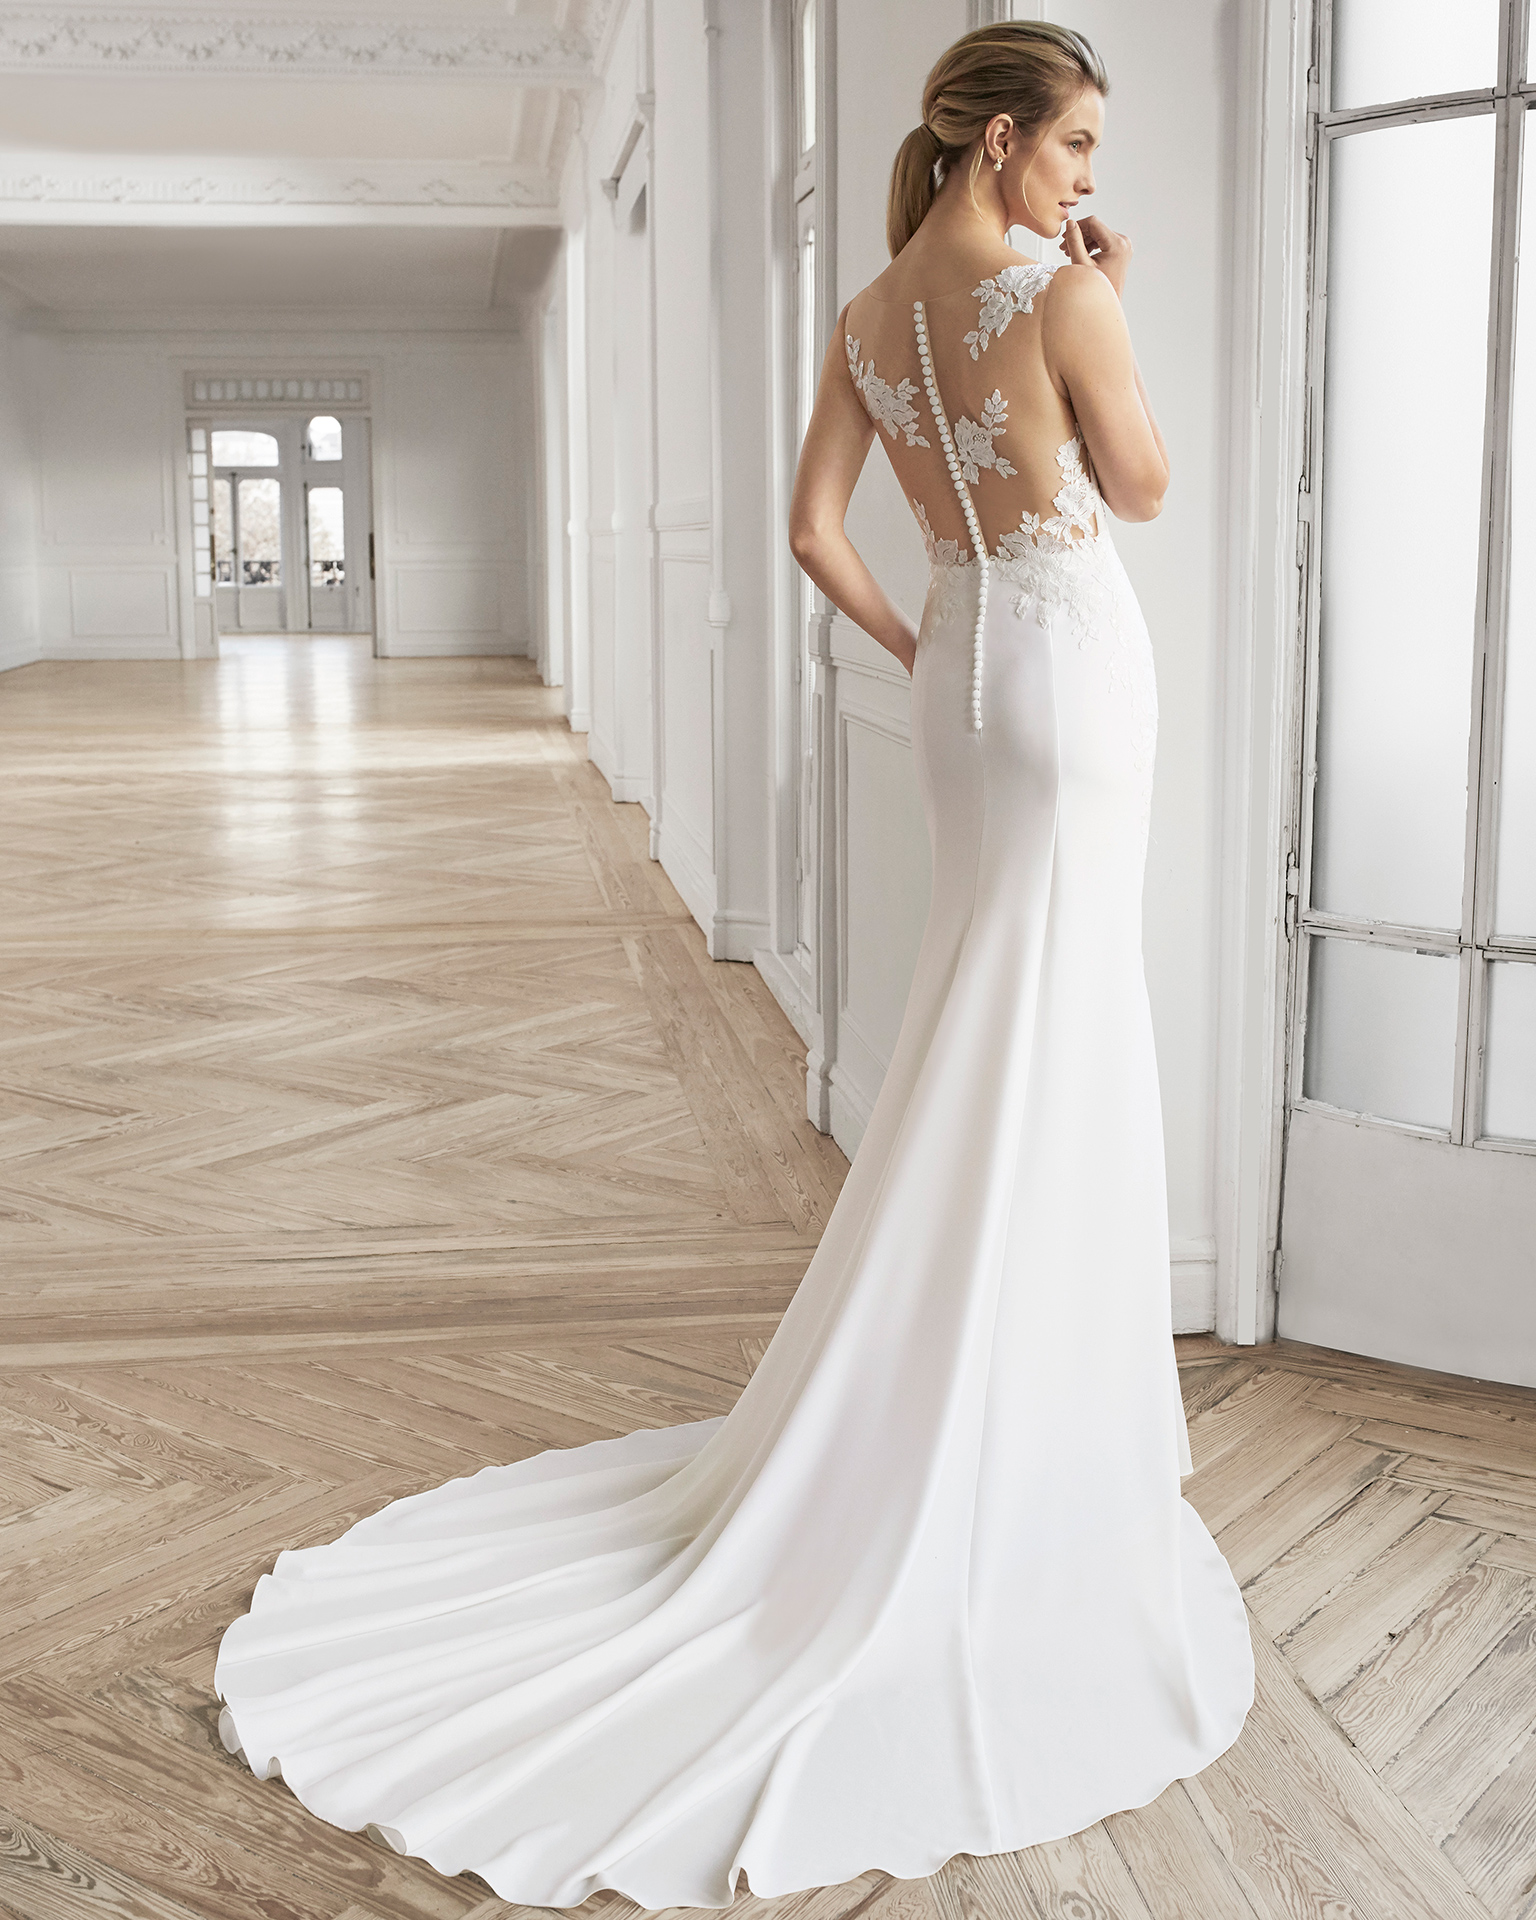 71e0dc210b A-line wedding dress in crepe Georgette and beaded lace. Deep-plunge  neckline